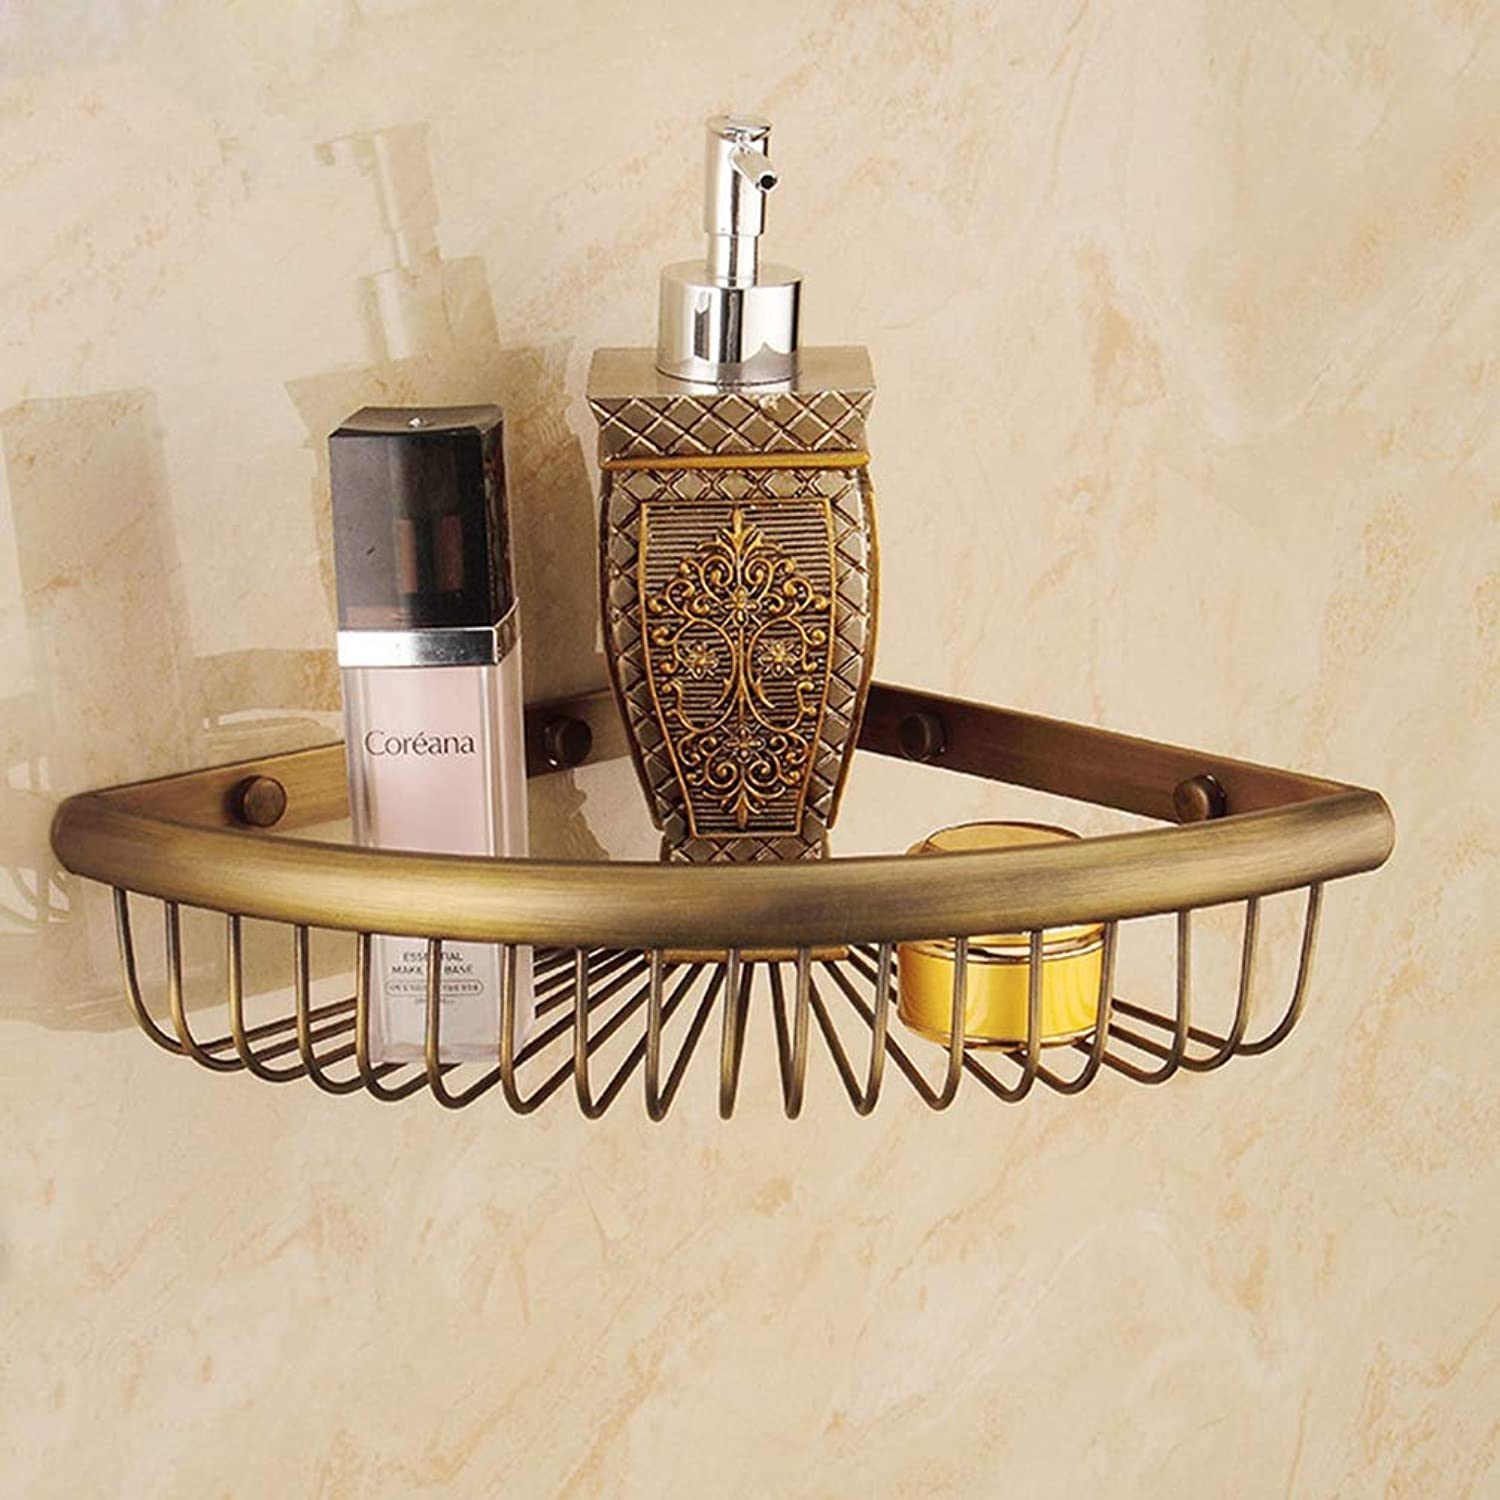 LUDSUY All Copper and gold Antique Double Tripod Corner Shelf Bathroom Shelf Double Triangle Hanging Basket, B